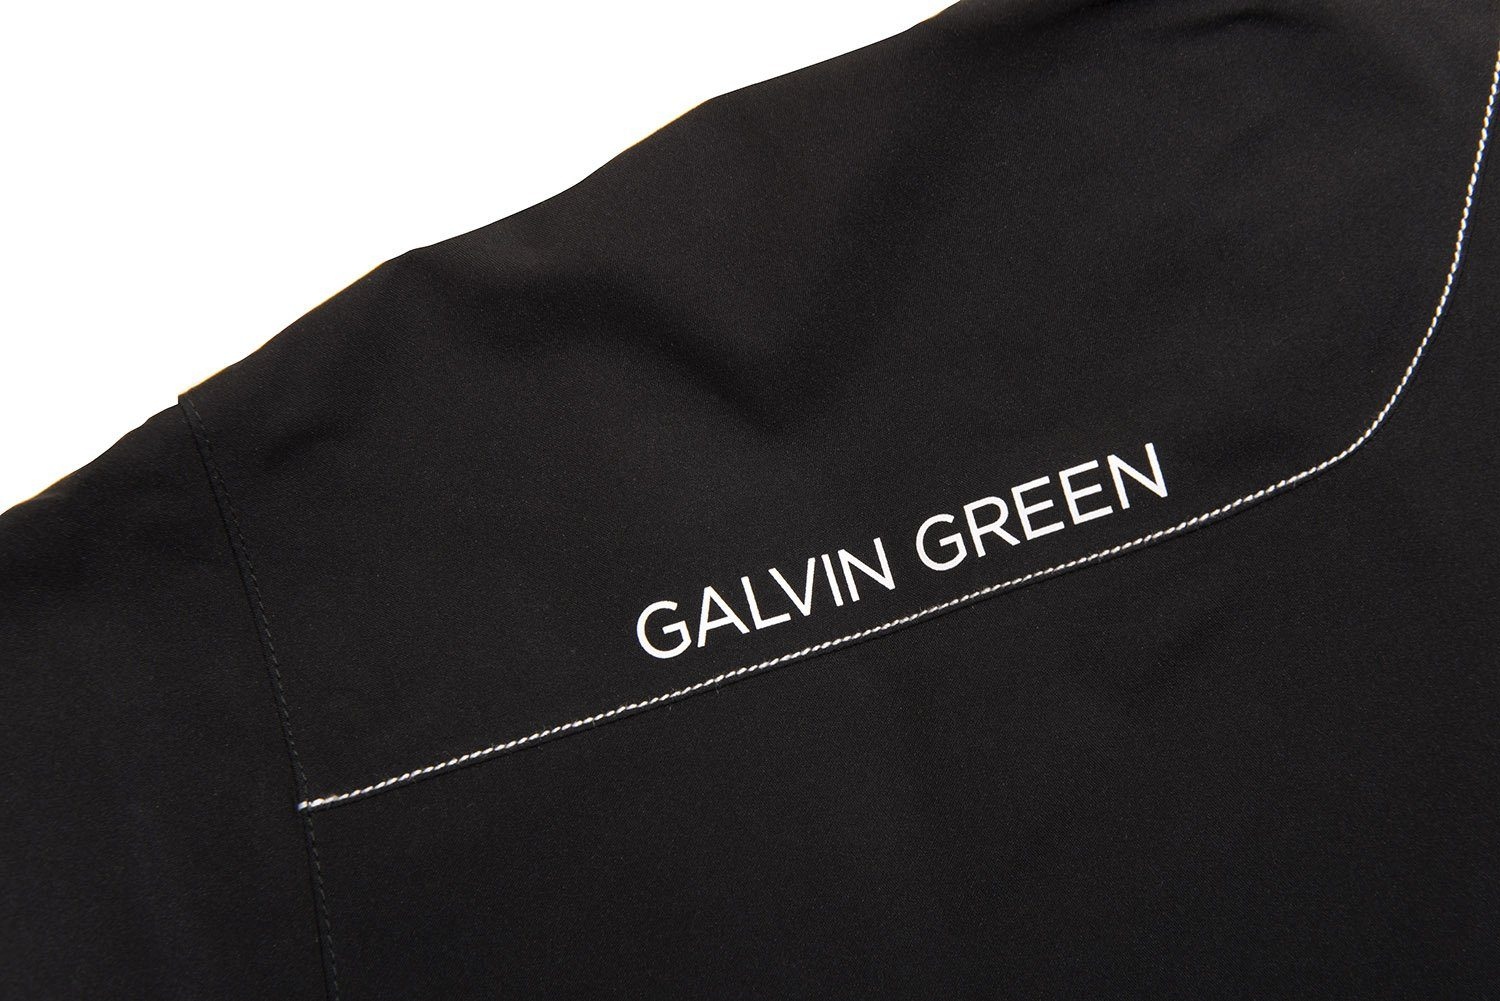 Galvin Green Angelo GORE-TEX Paclite Full Zip Jacket in Black